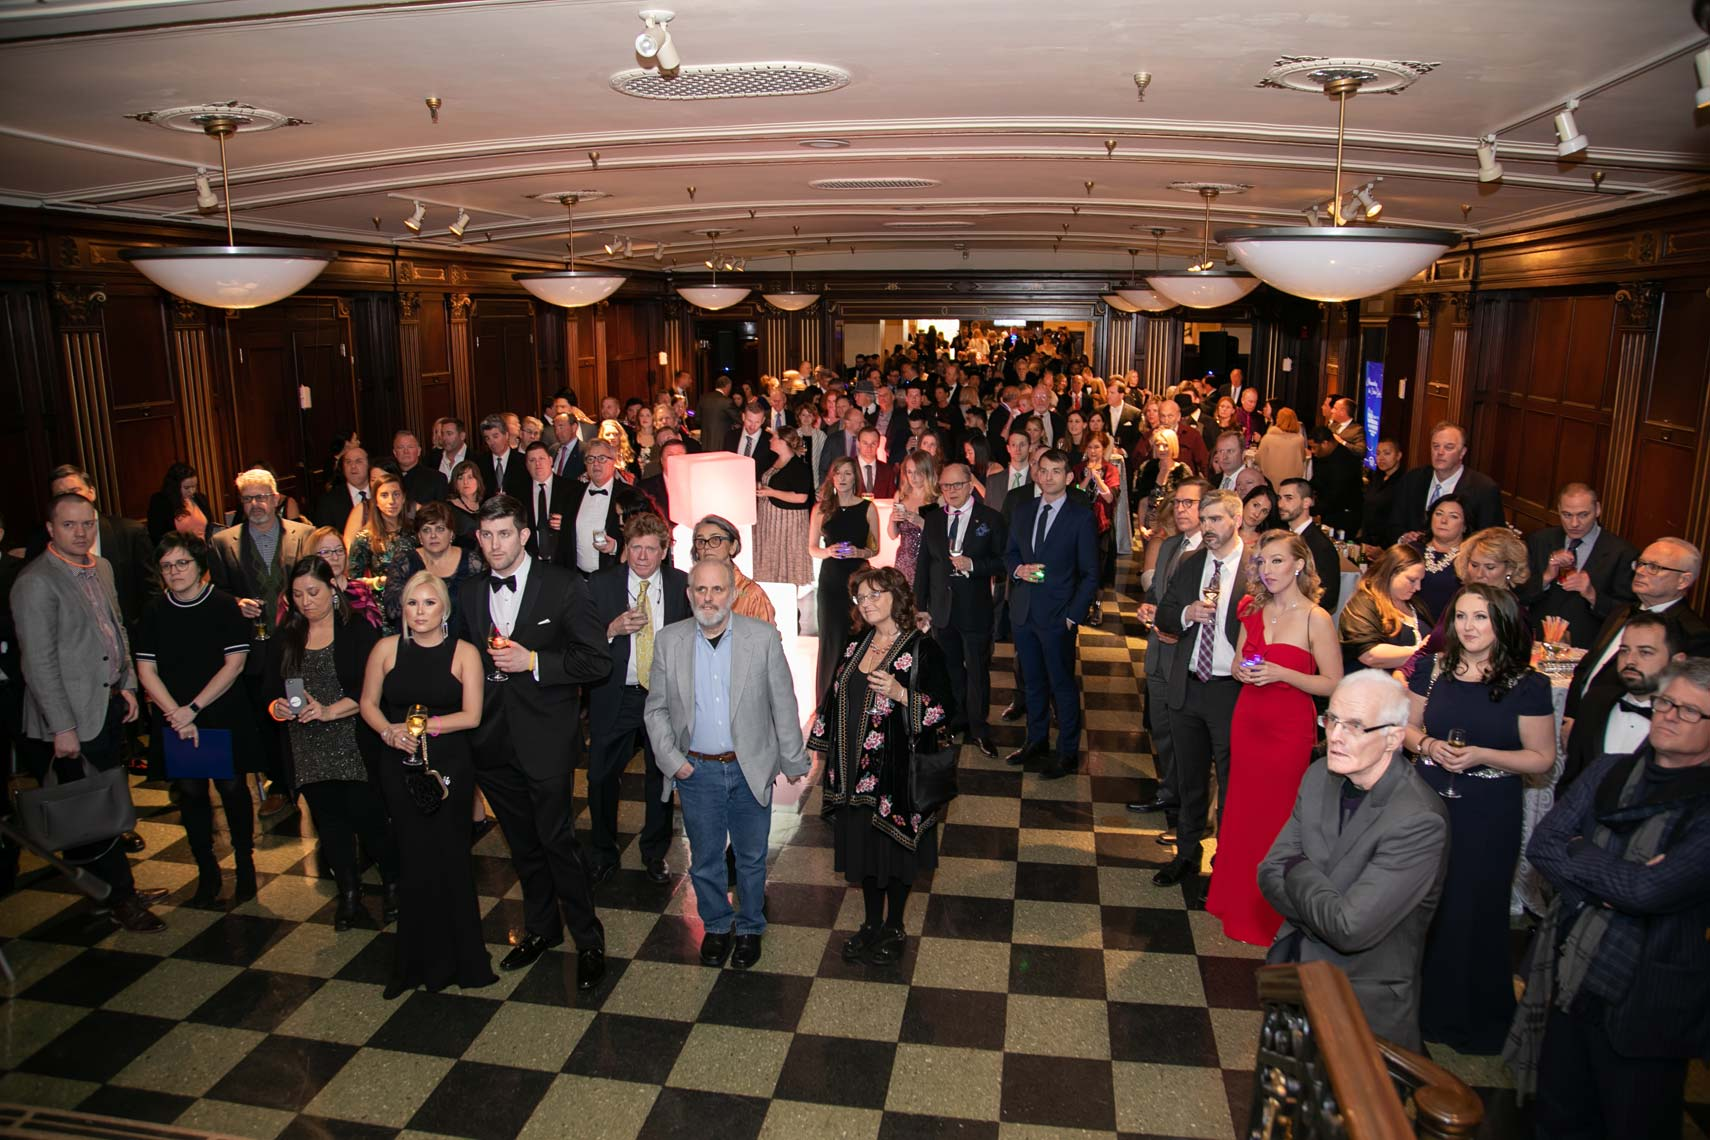 Gala guests fill the new Folk/Americana/Roots Hall of Fame space